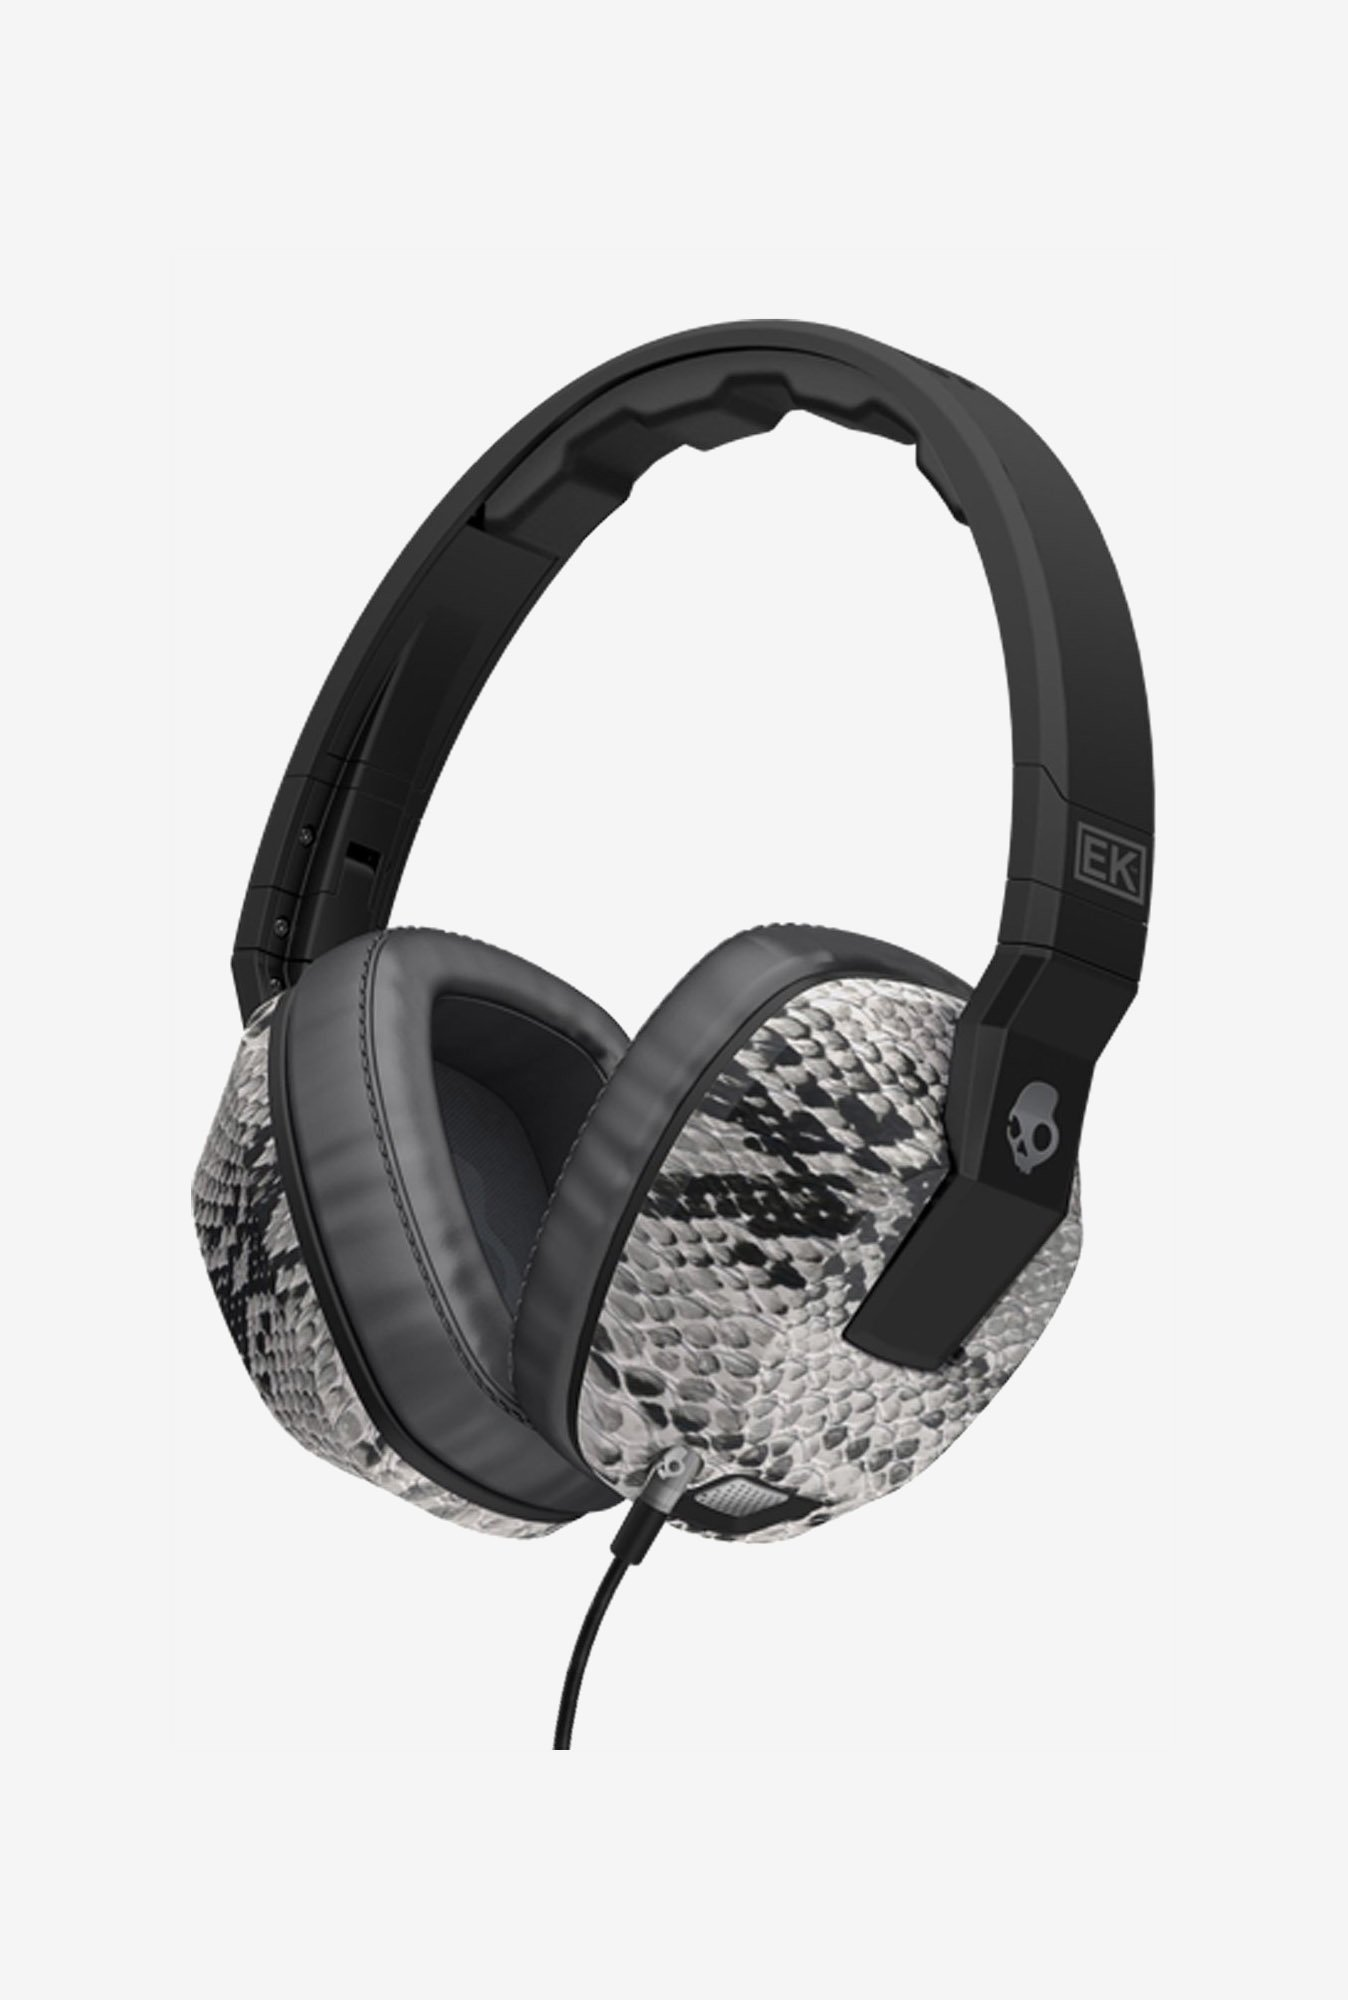 Skullcandy Crusher SGSCFY-103 Over Ear Headphone Black